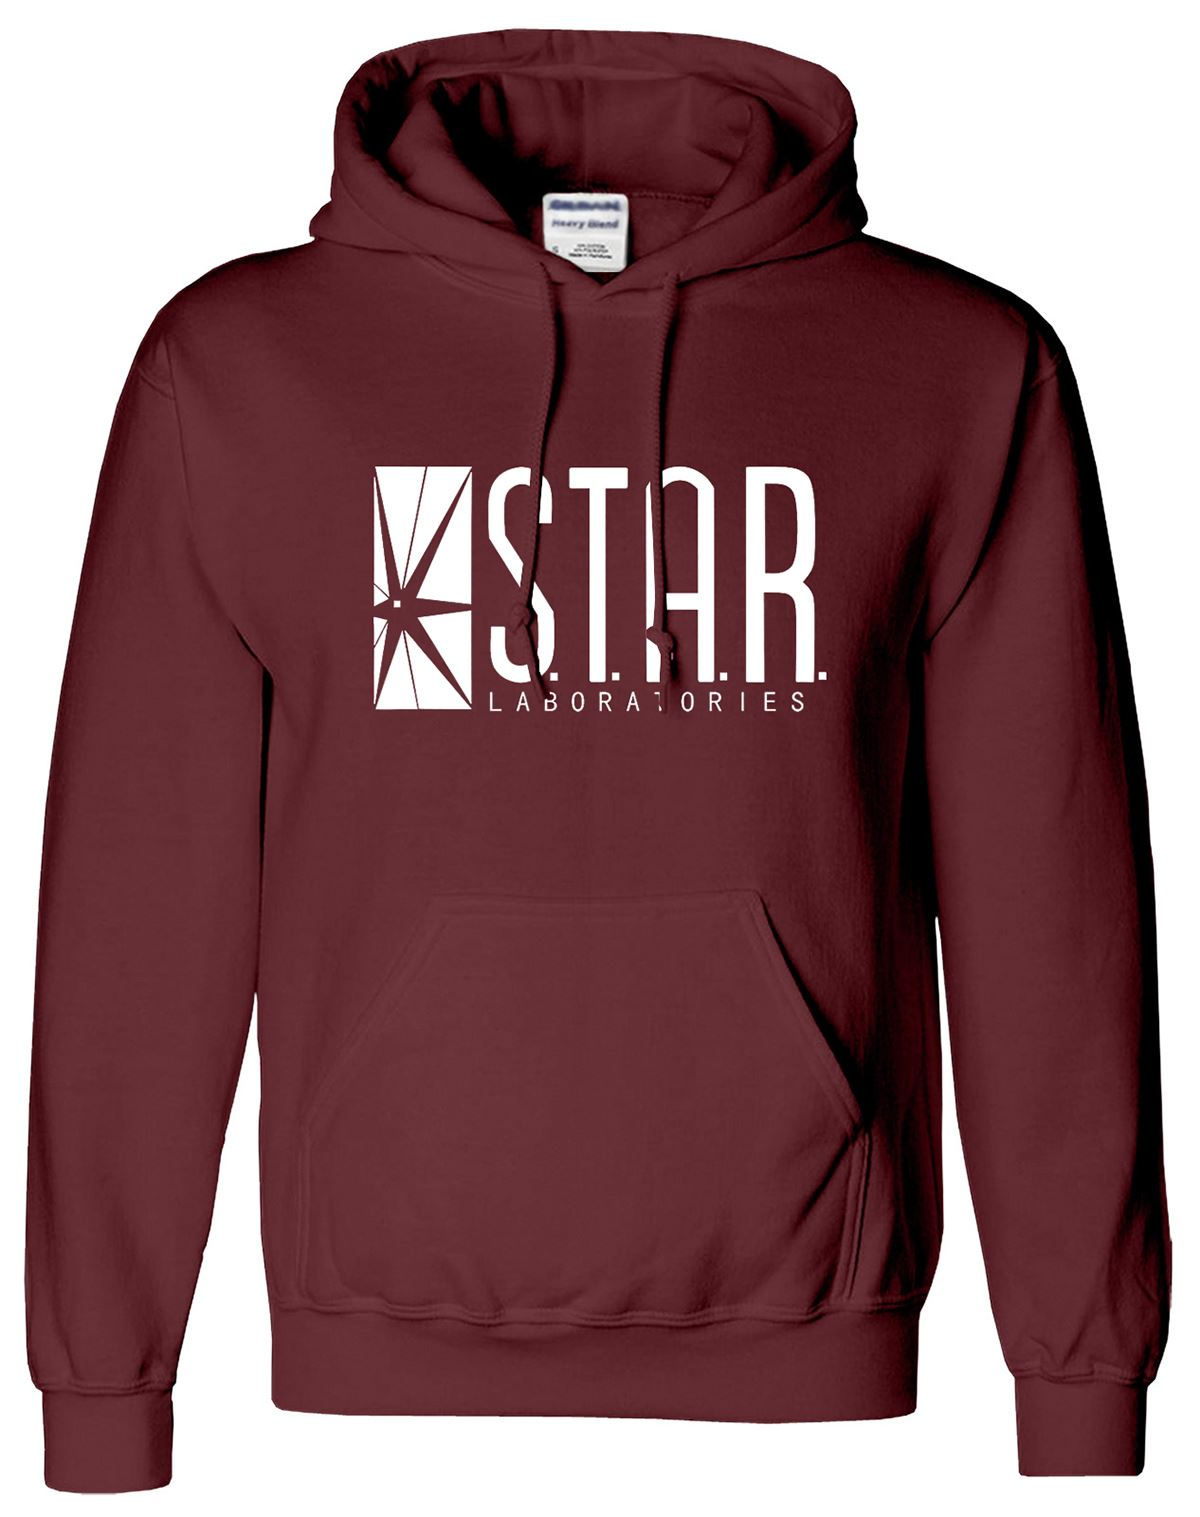 Star Laboratories Hoody Inspired TV Series S.T.A.R.Labs Hoodies Pullover Sweat